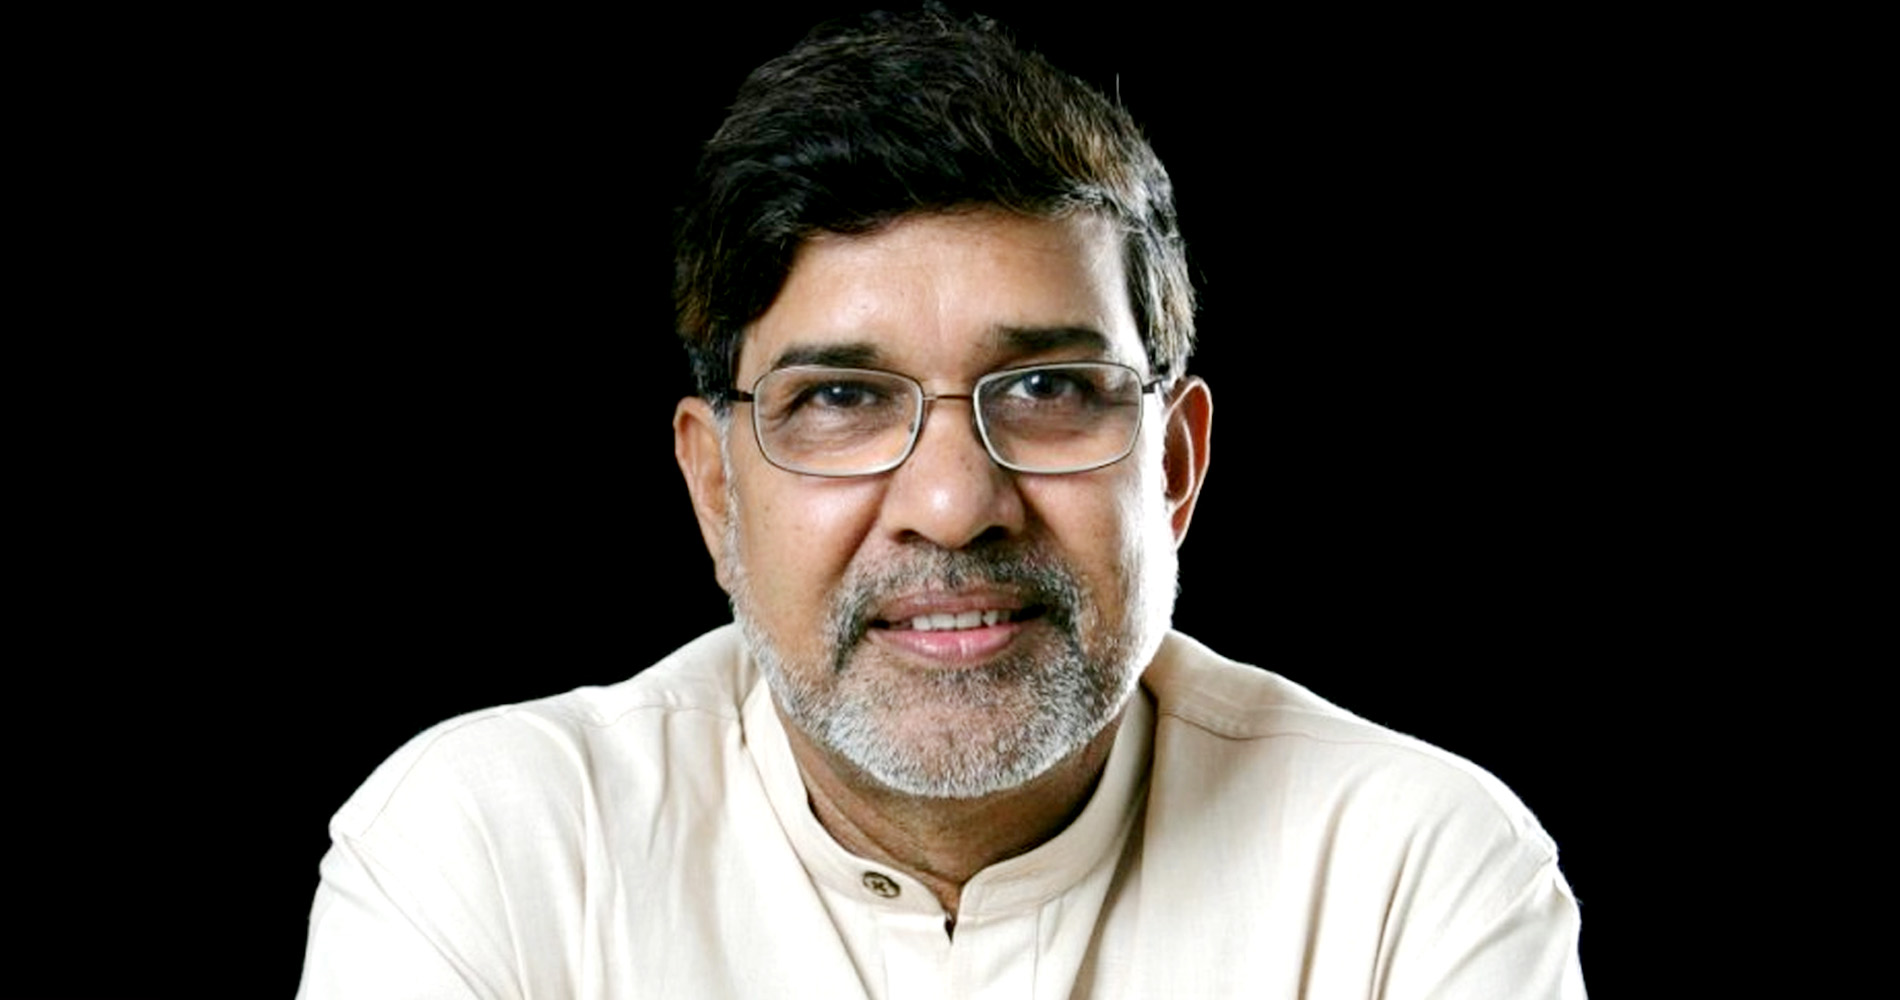 'New bill will end India as transit point for trafficking of girls', says Nobel Laureate Kailash Satyarthi